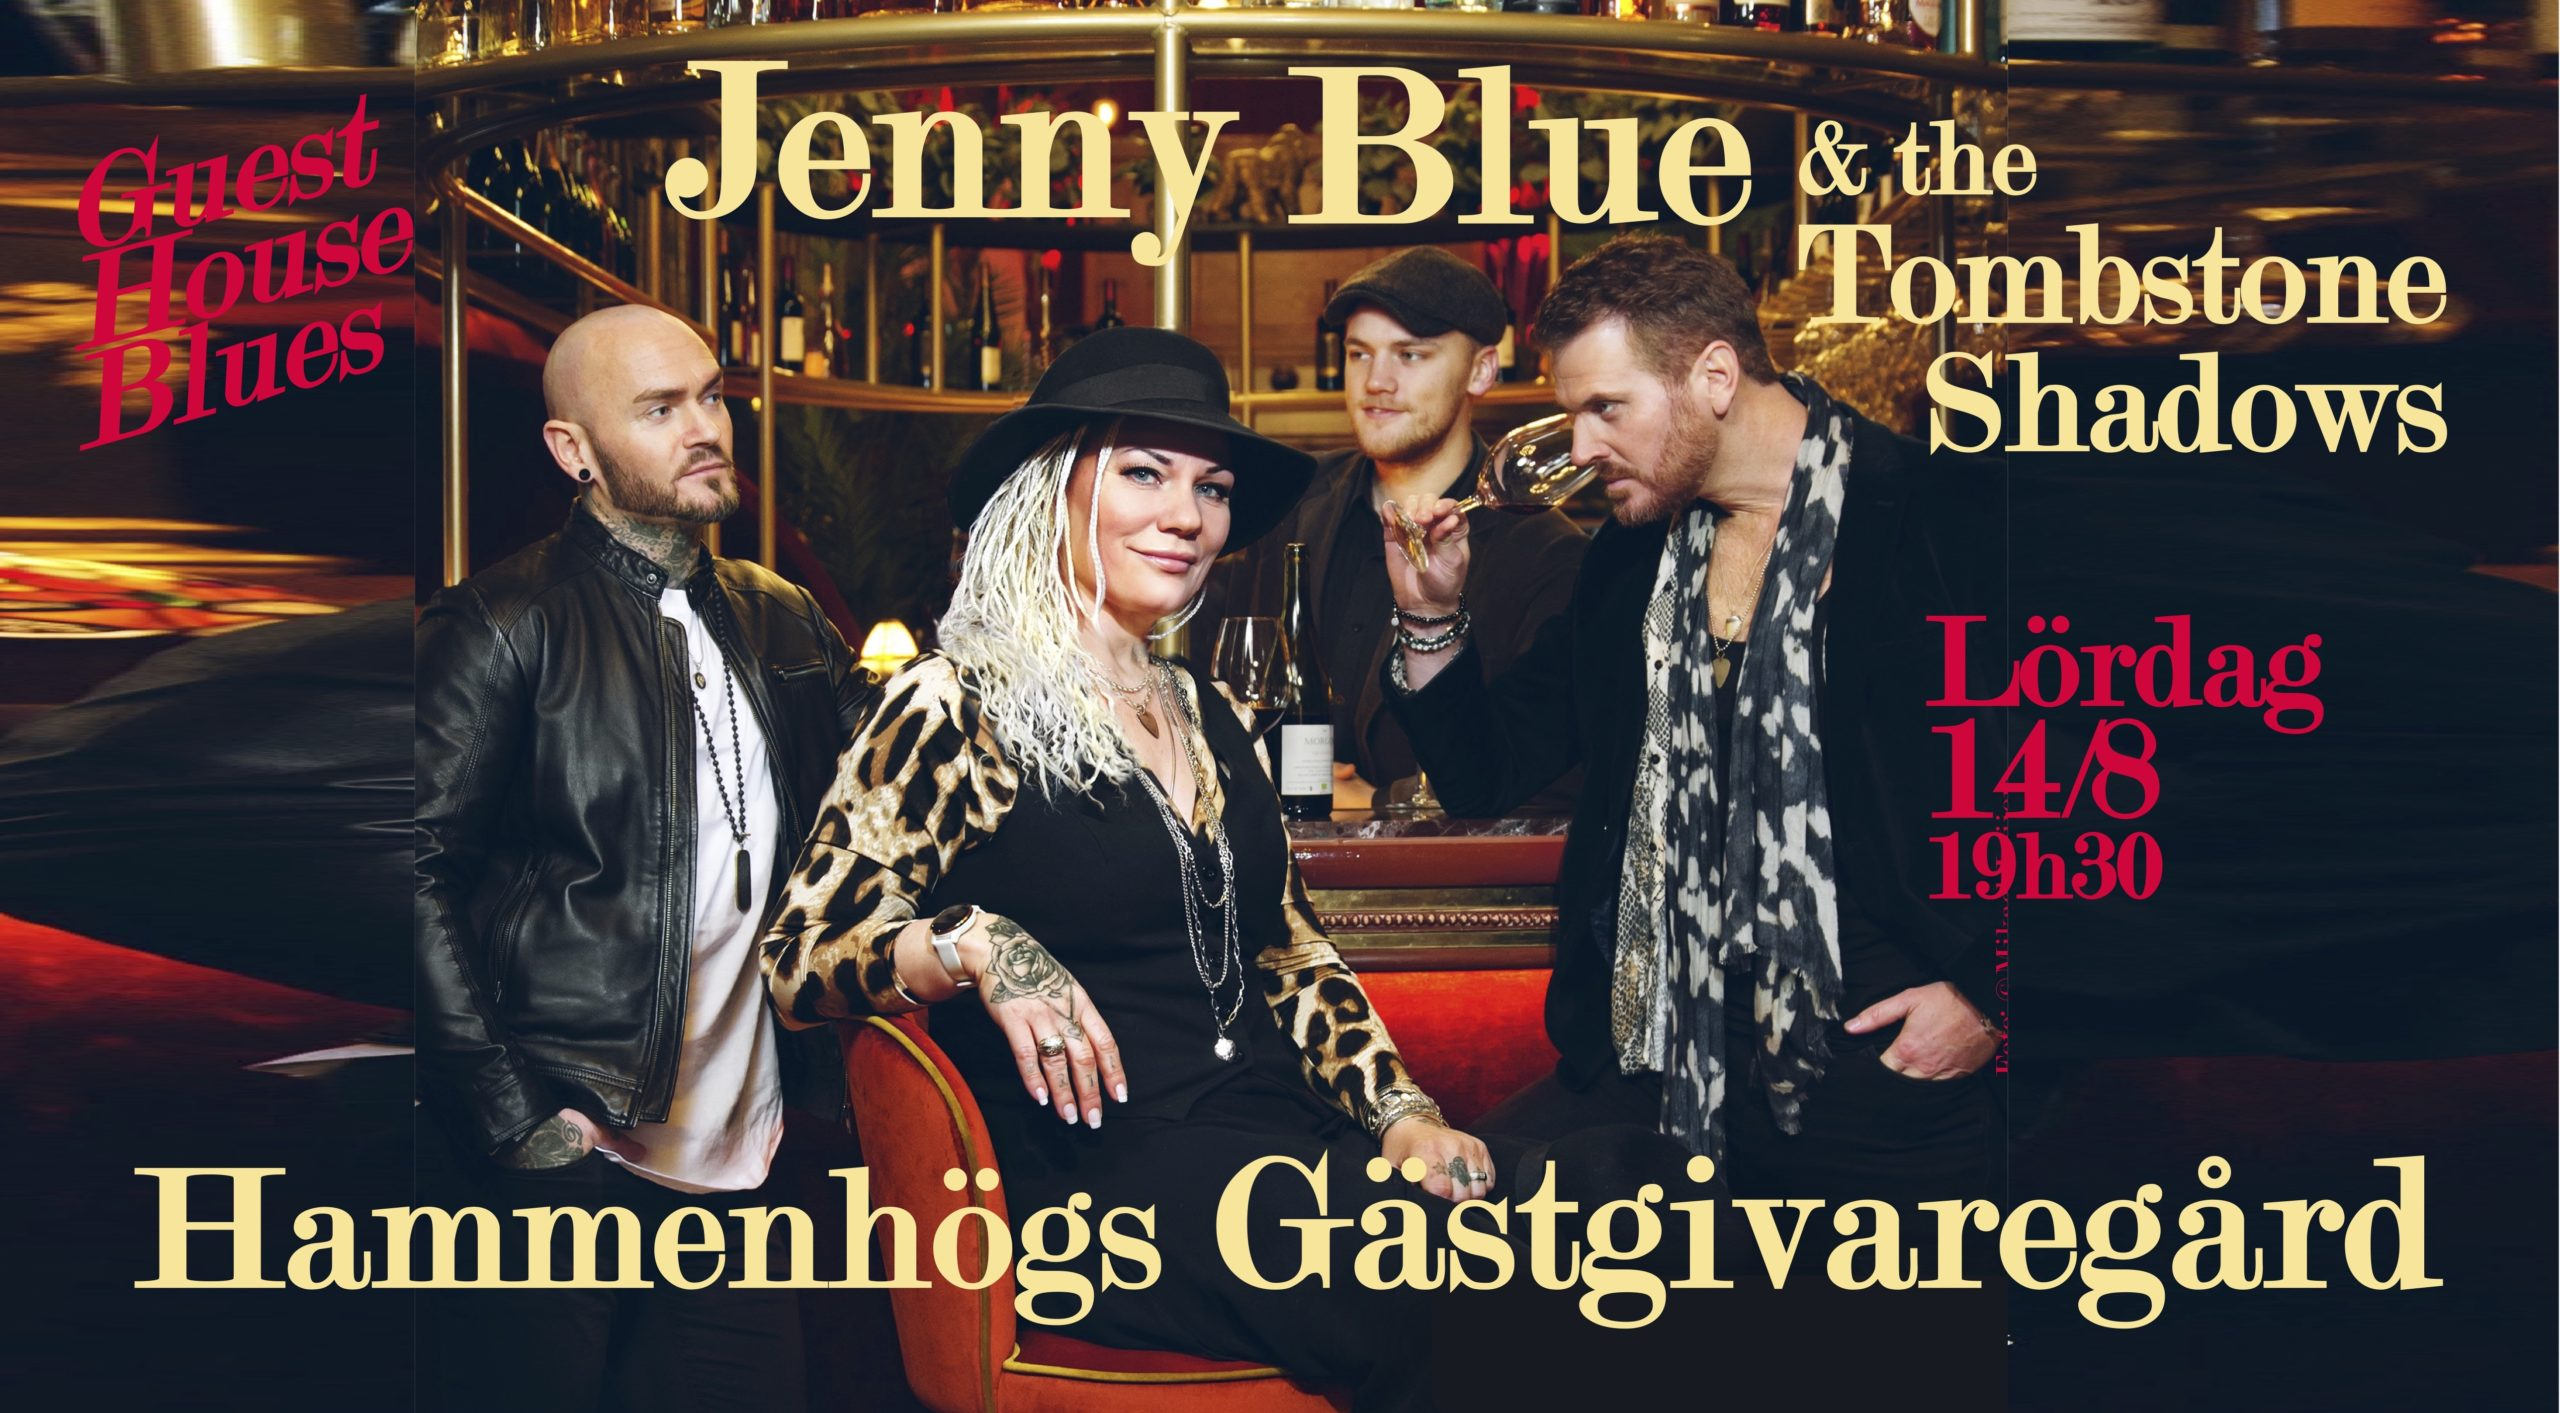 Guest house blues - jenny blue & the tombstone shadows